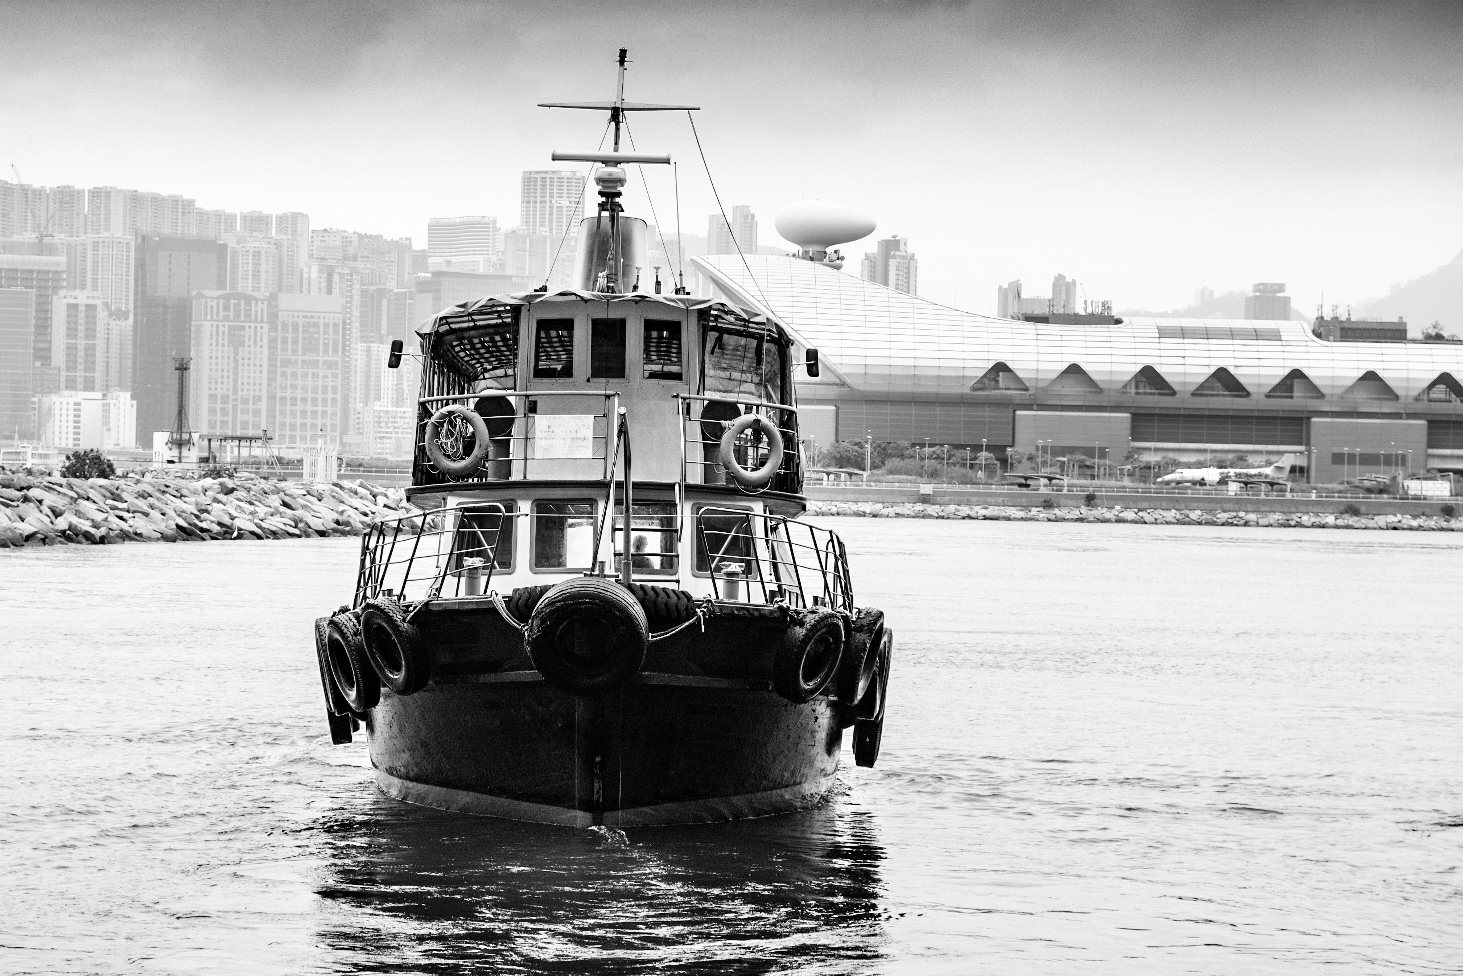 The Ferry at Kwun Tong Promenade